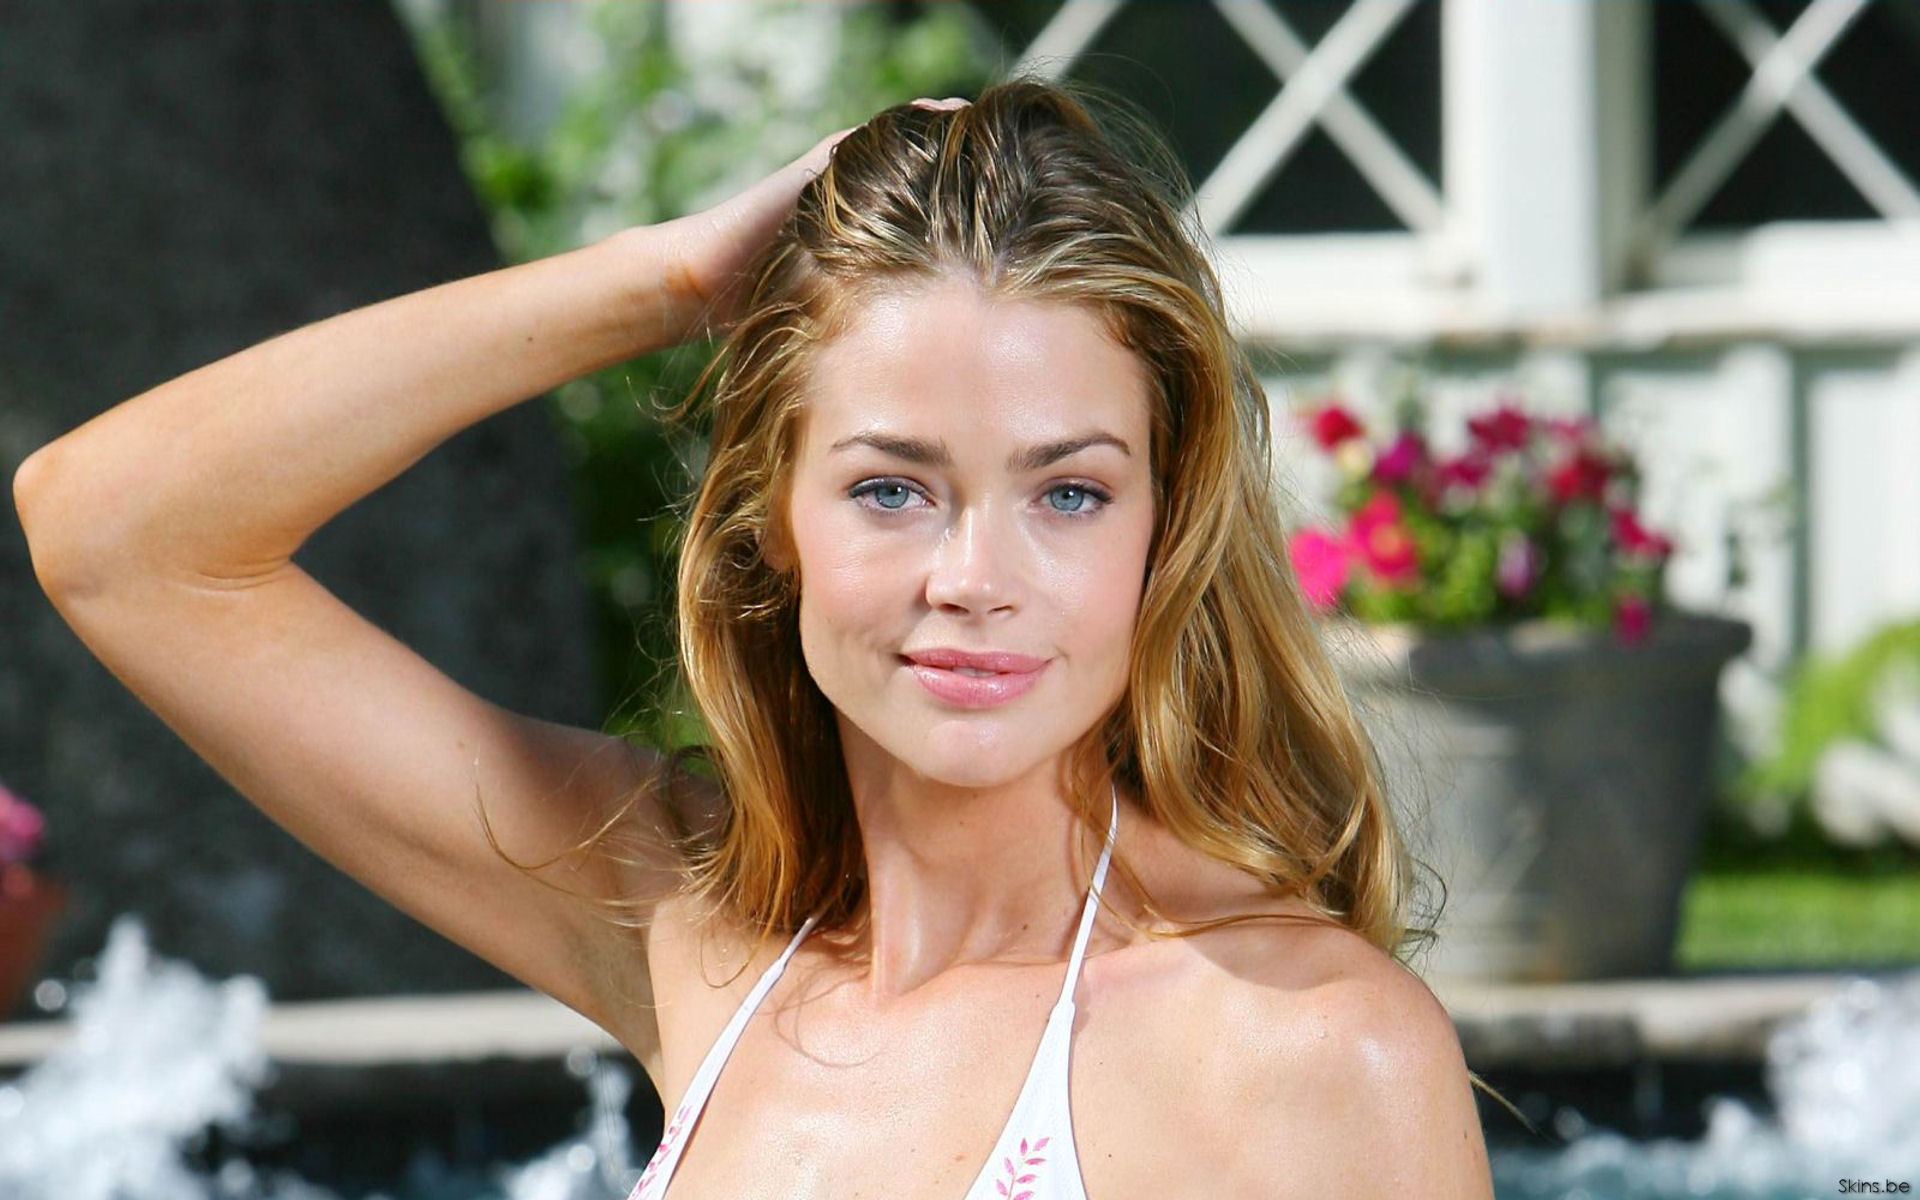 denise richards 1920x1200 wallpapers - photo #29